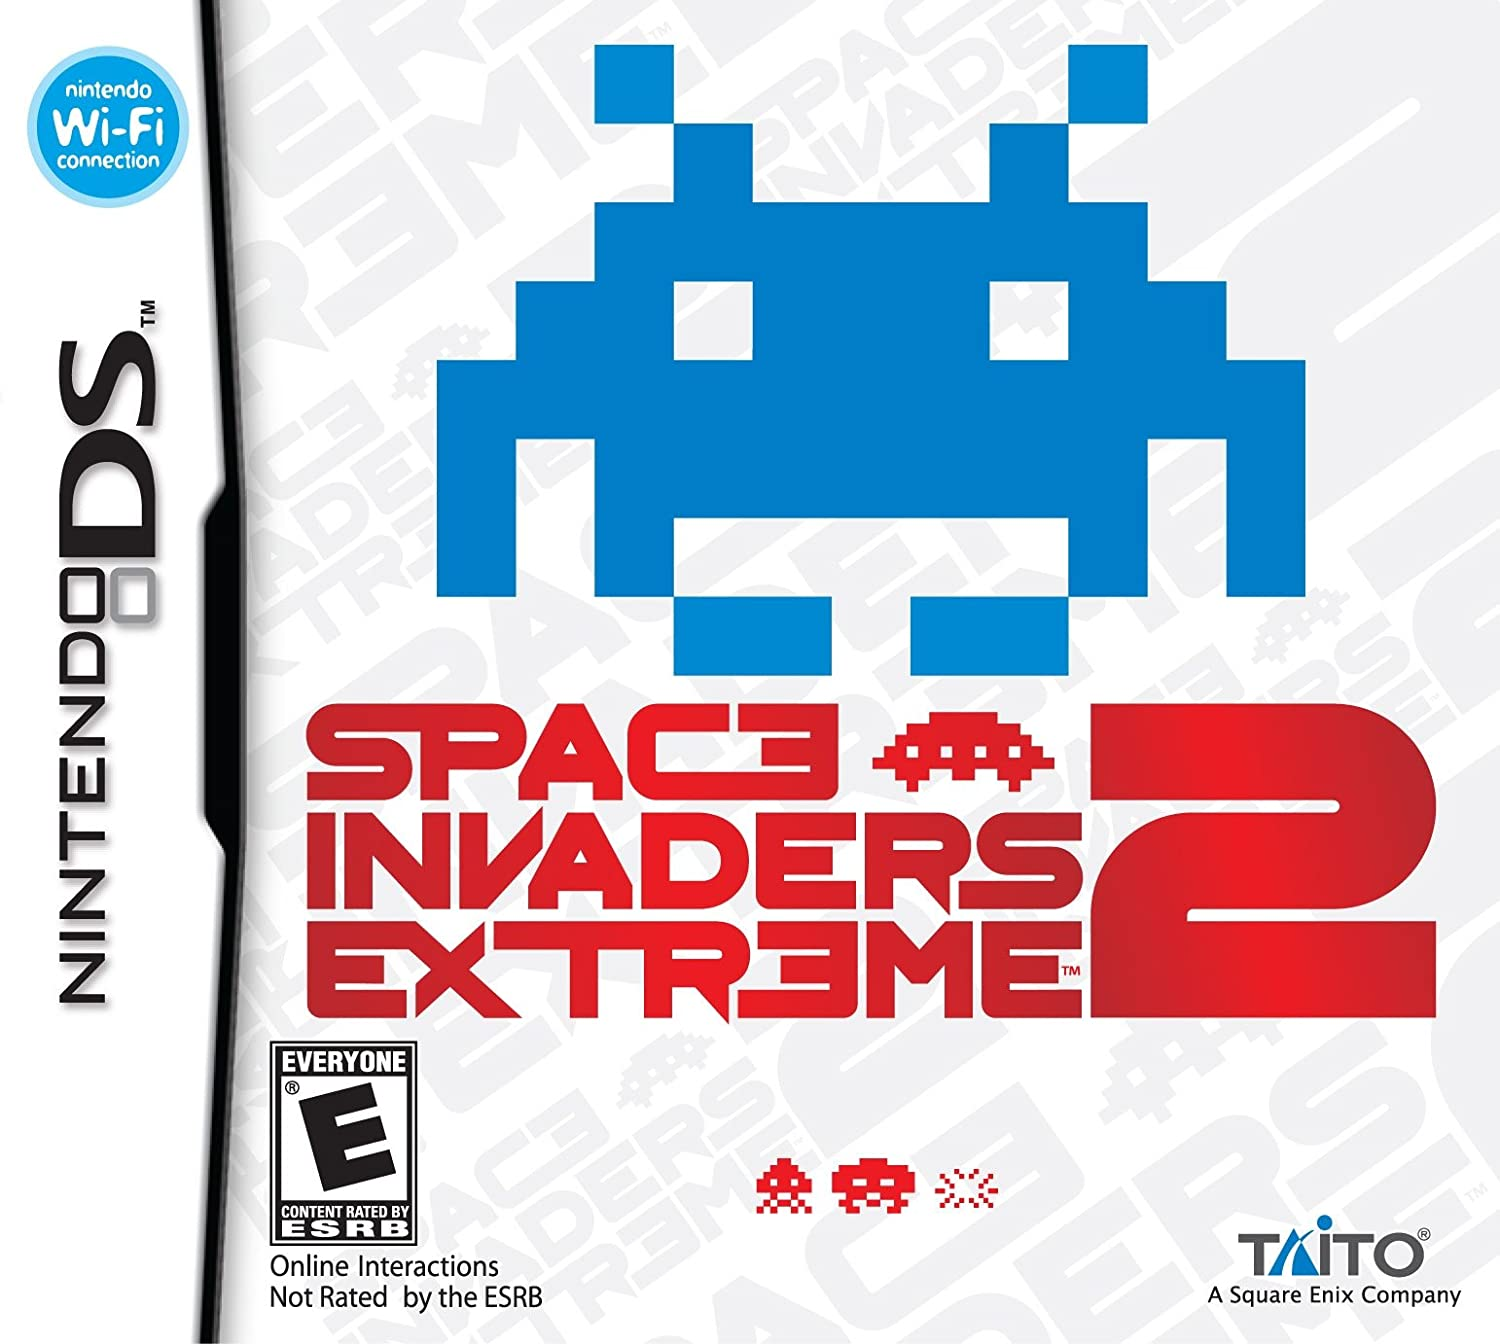 Space Invaders Extreme 2 stats facts